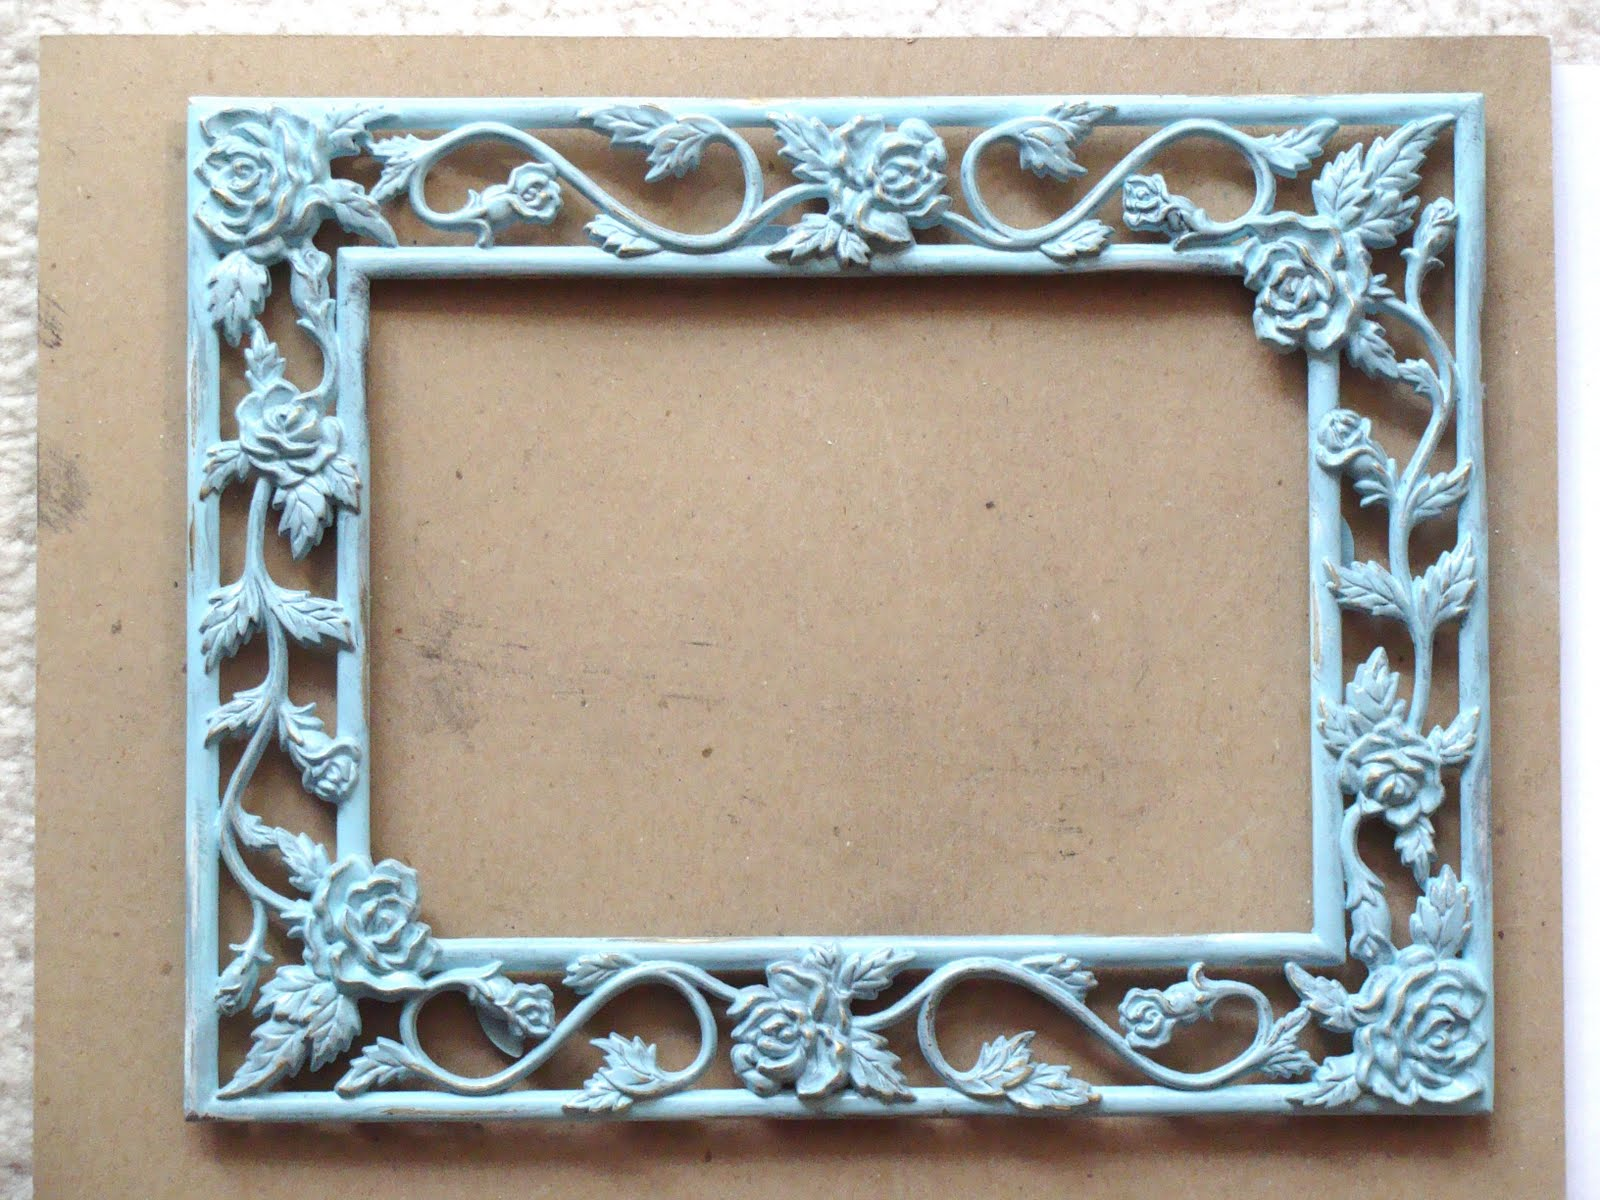 Sewing tutorials crafts diy handmade shannon sews blog for dont be afraid to try antiquing distressing aging your picture frames if i can do it you can do it jeuxipadfo Choice Image